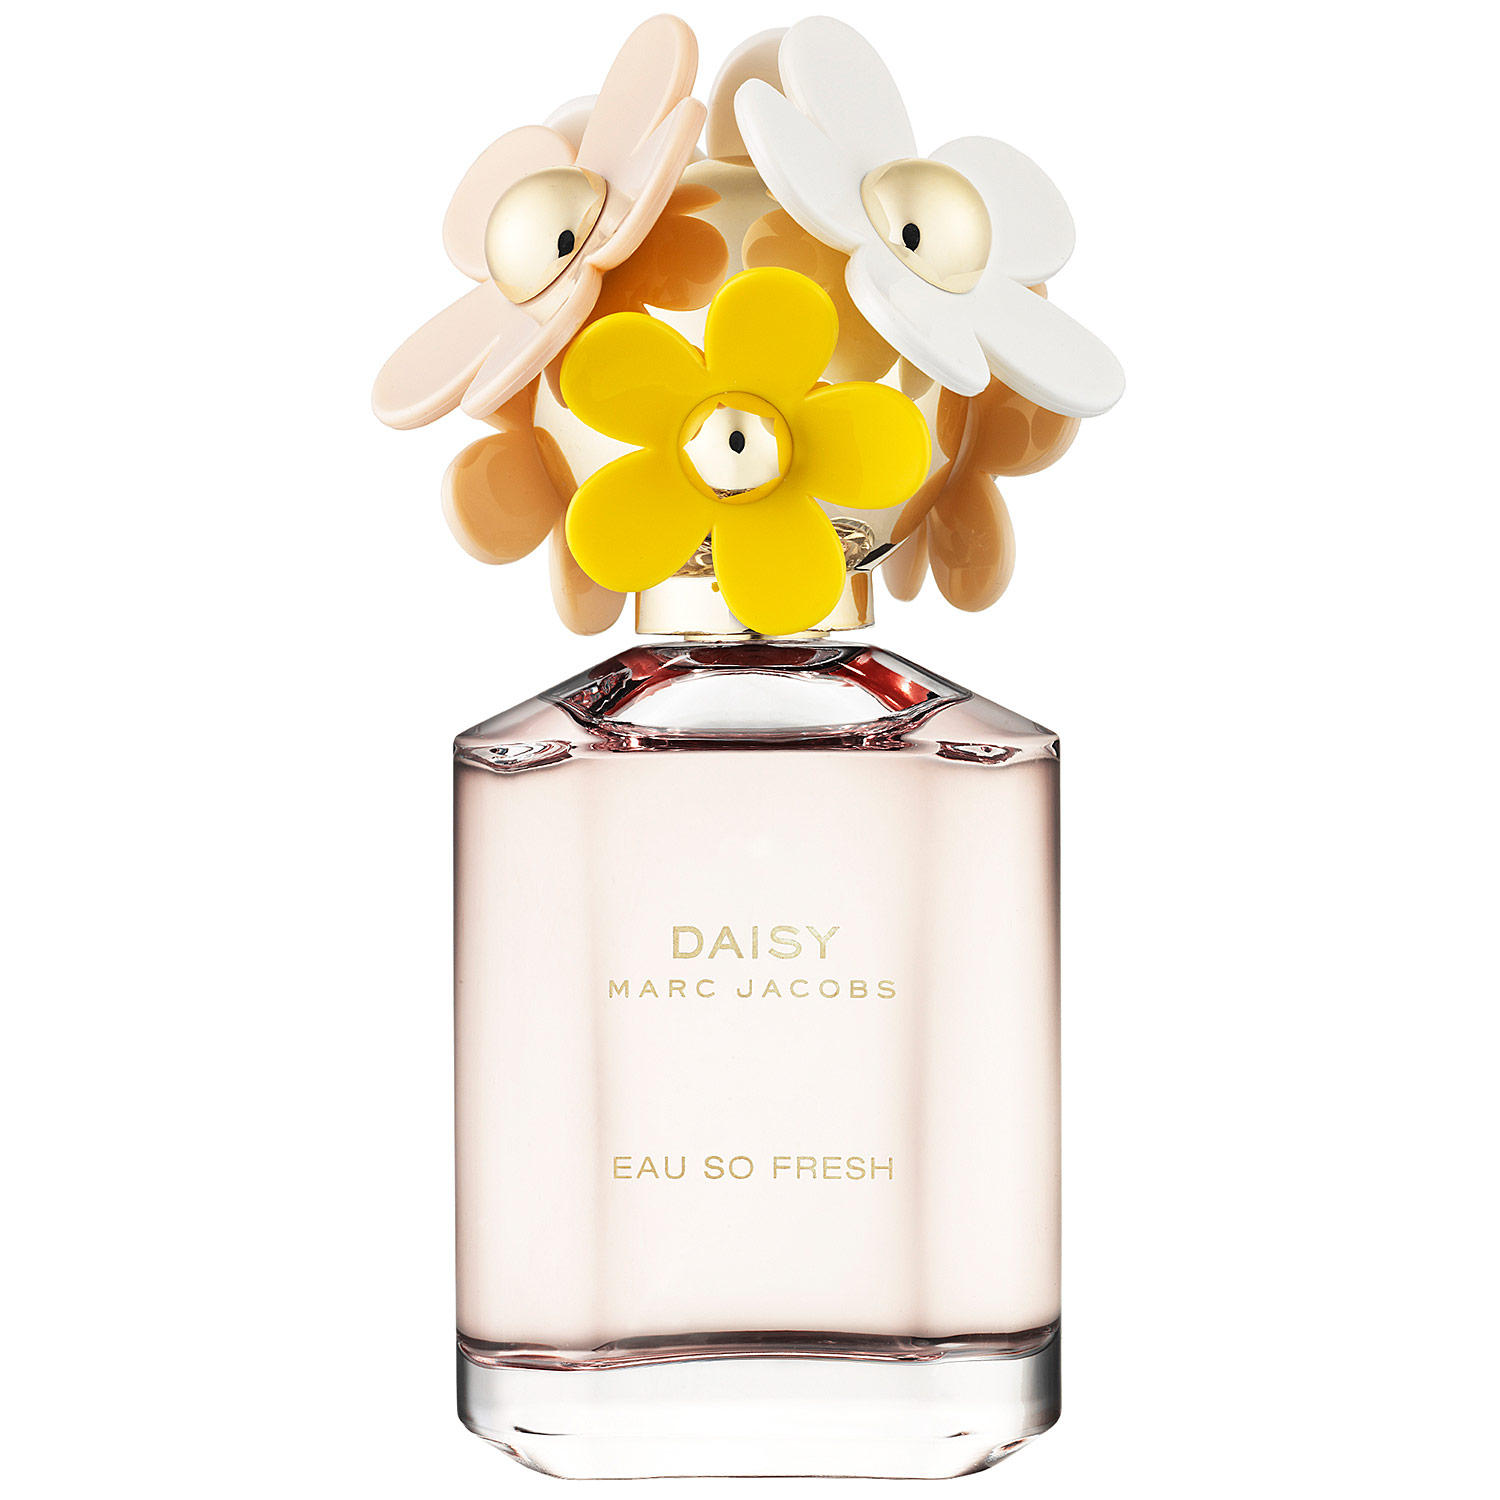 Marc Jacobs Daisy Eau So Fresh Eau de Toilette for Women (4.25 Fl. Oz.)